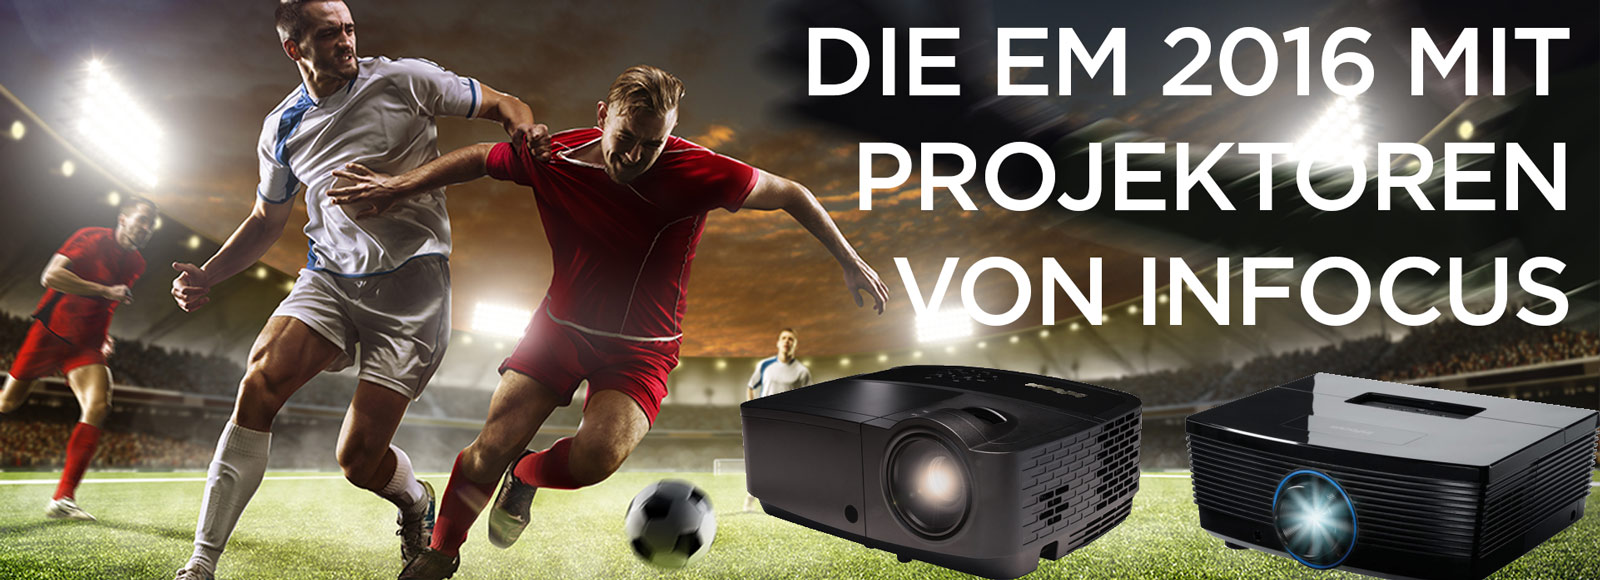 HD video projector